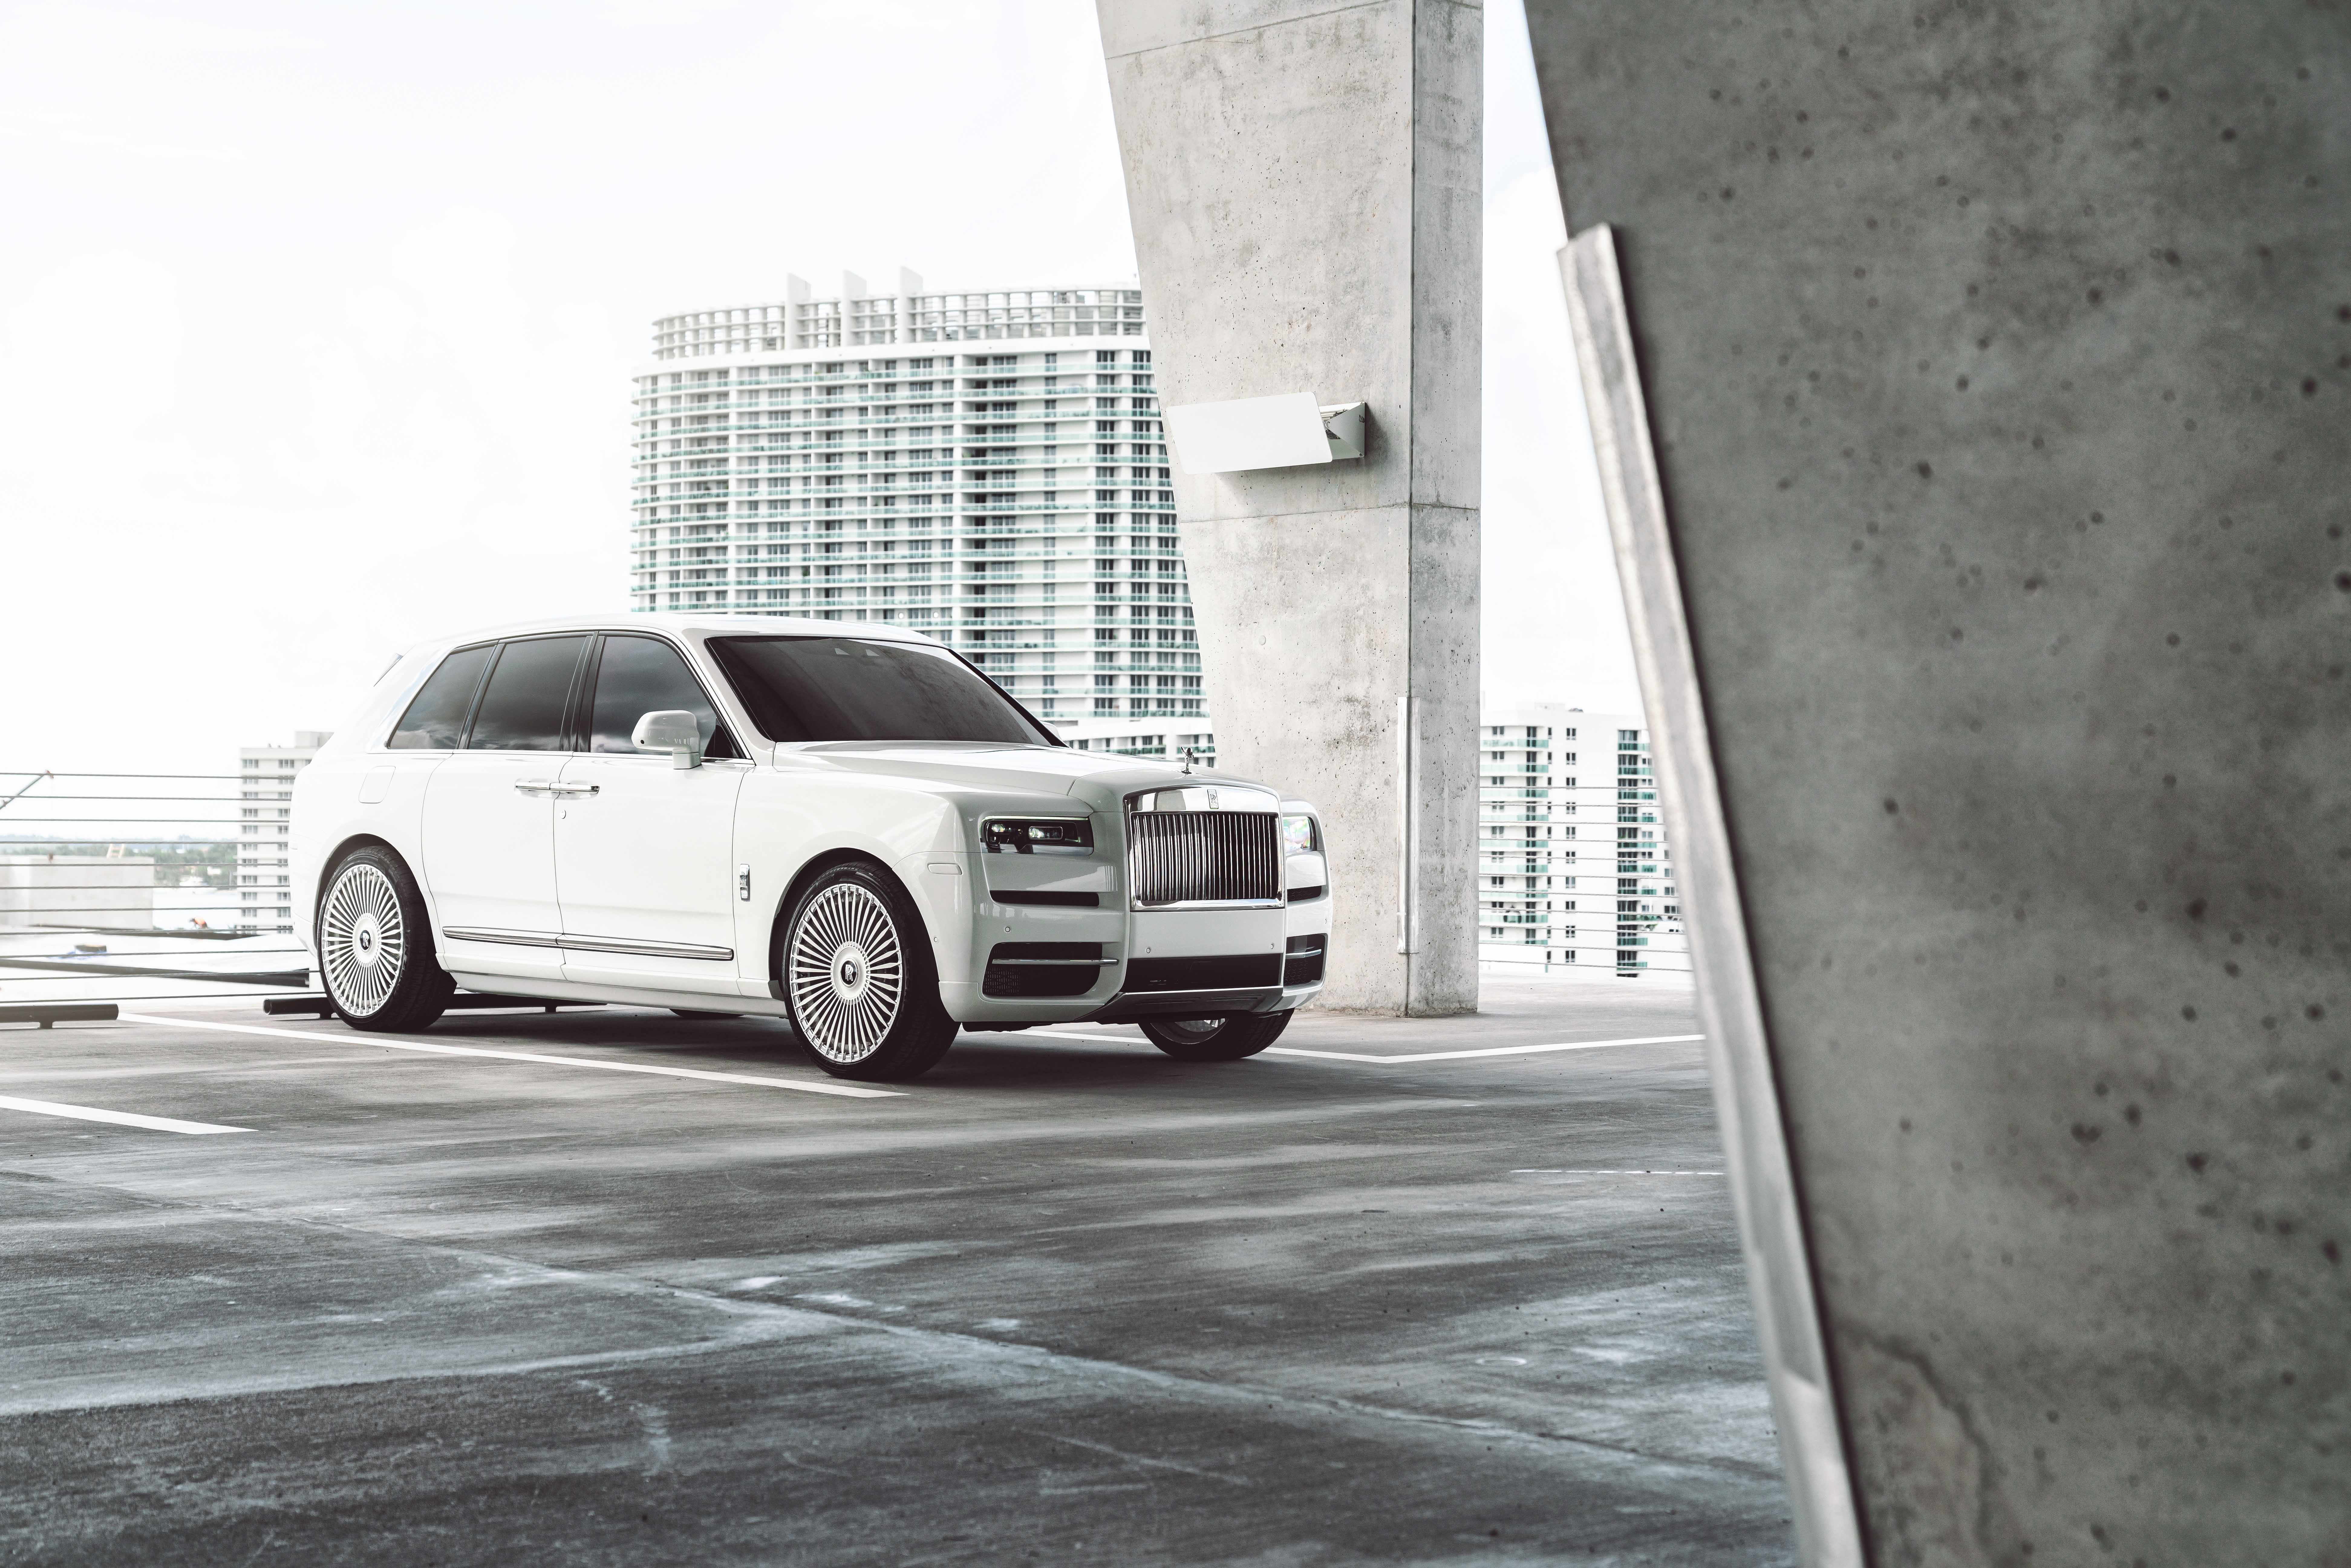 White Rolls Royce Cullinan 8k 2020 Hd Cars 4k Wallpapers Images Backgrounds Photos And Pictures